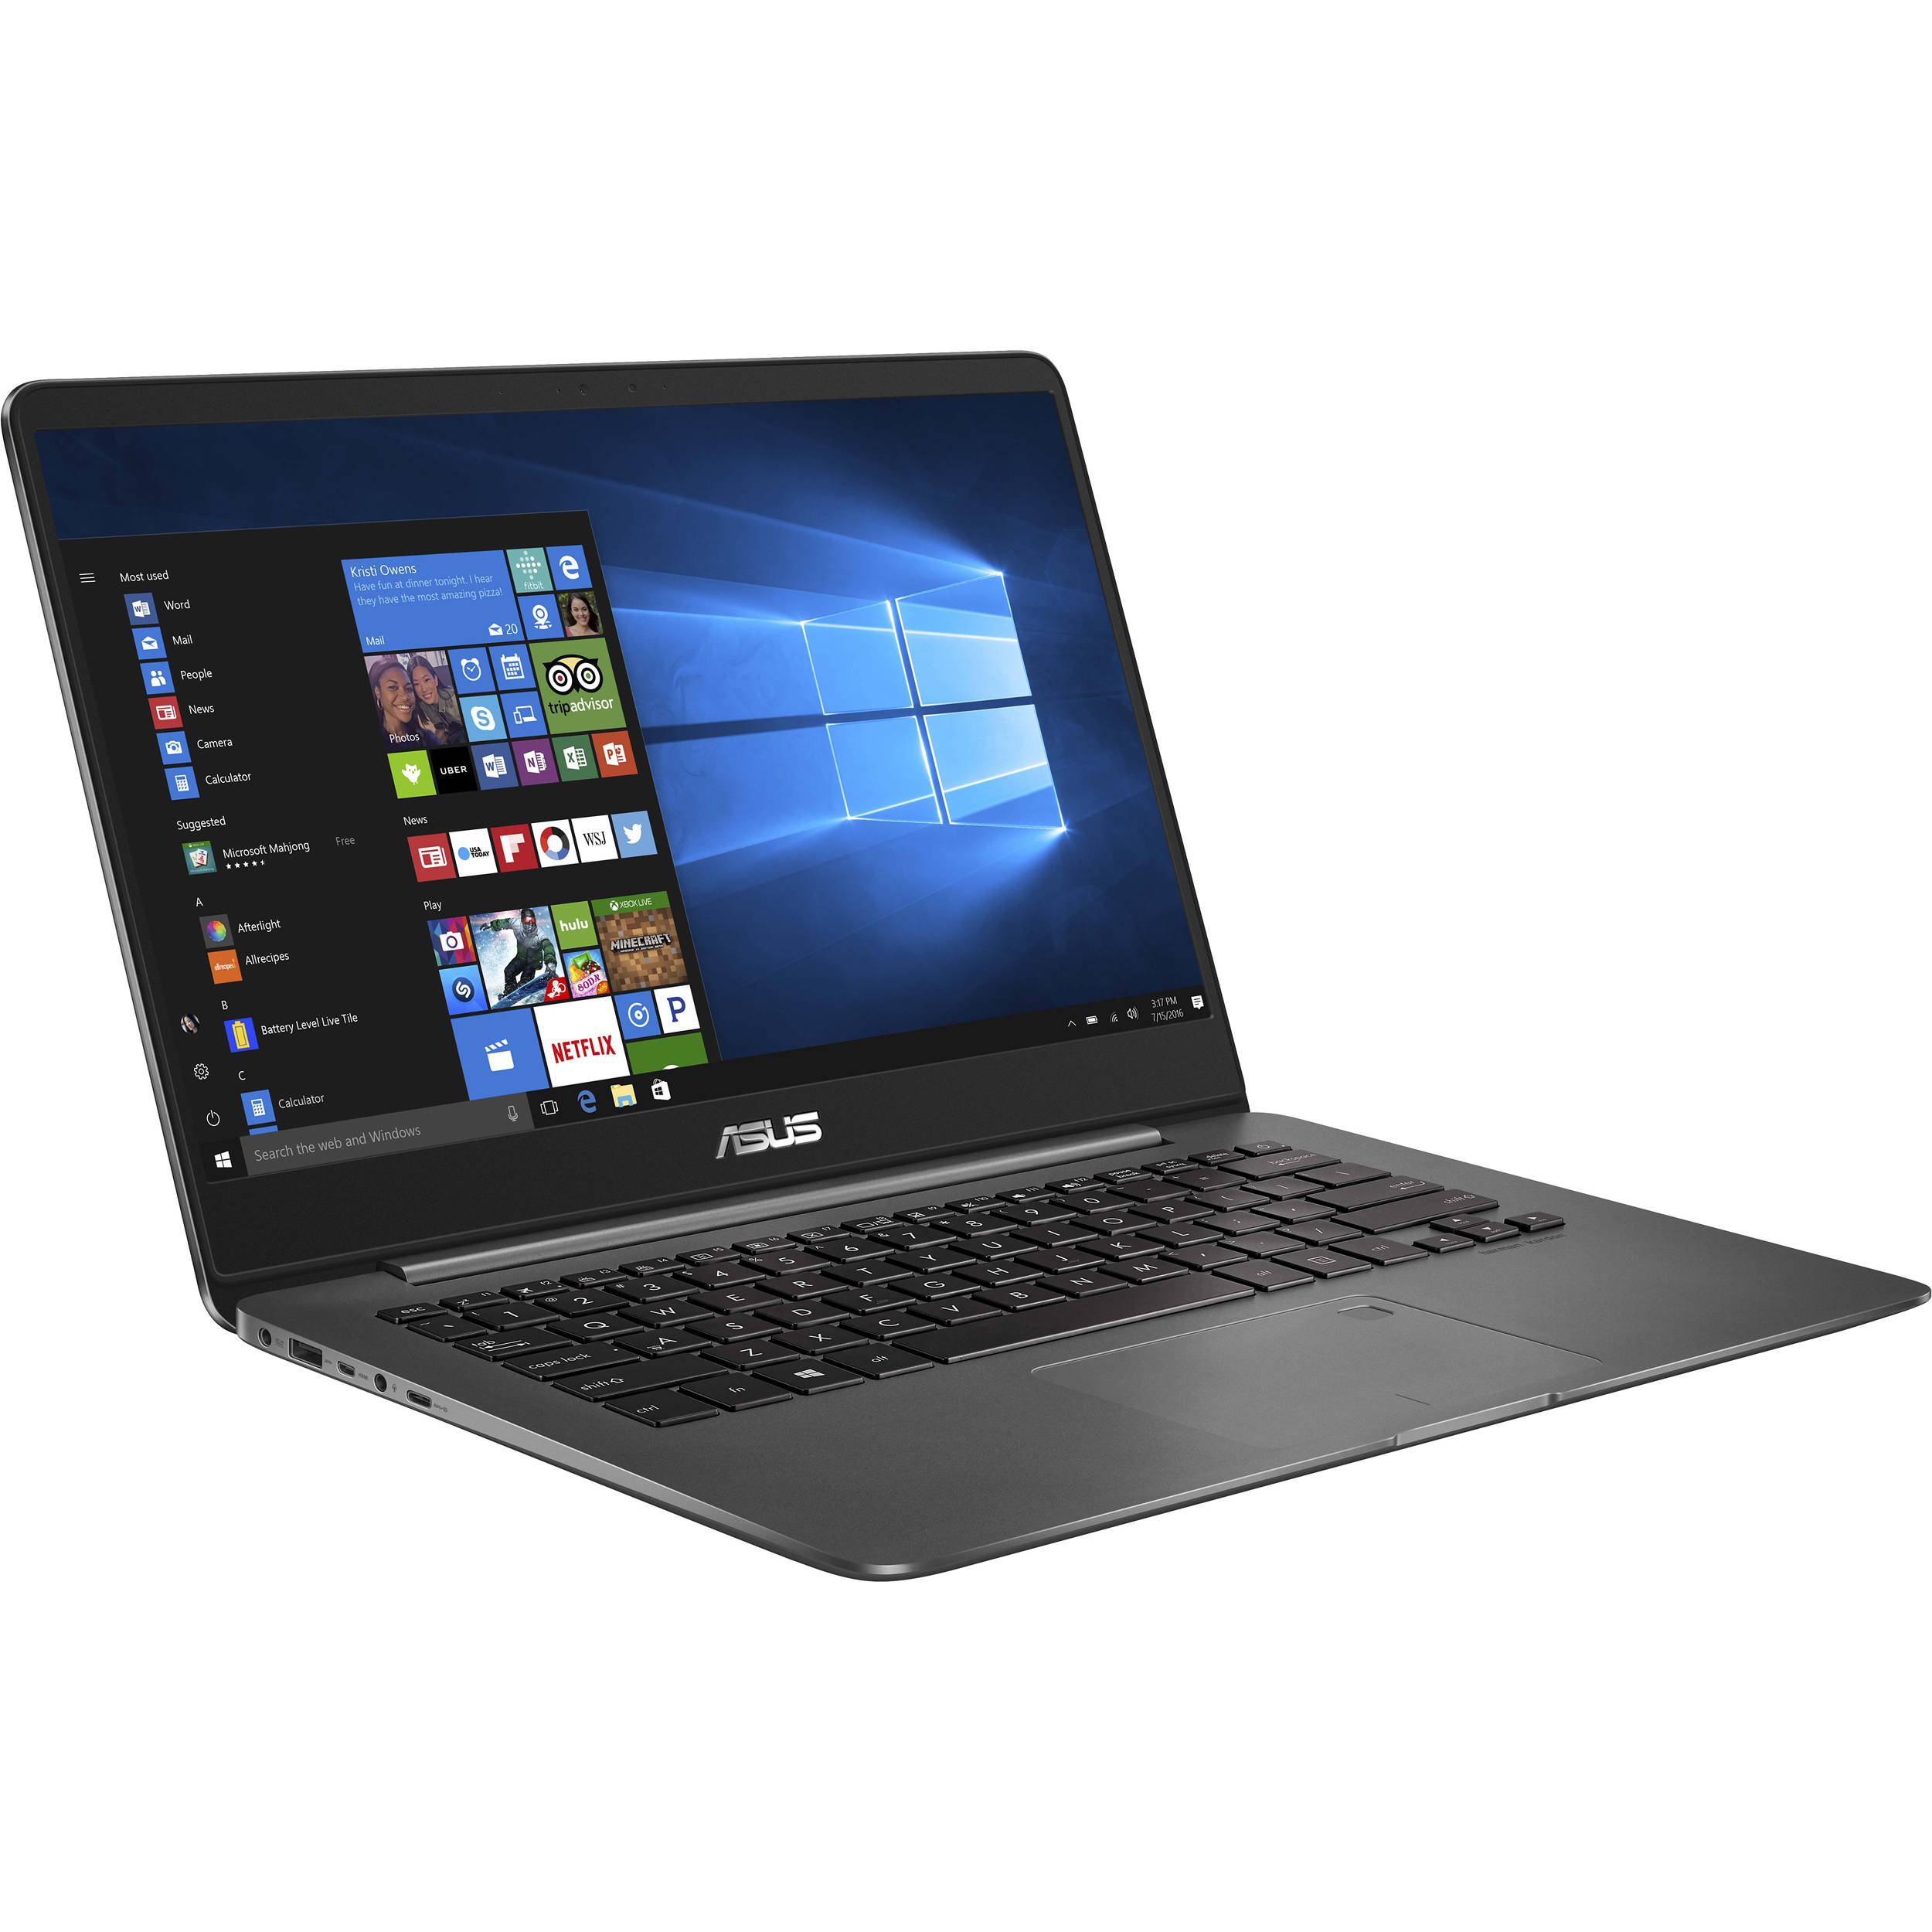 ASUS Zenbook UX21E | B&H Photo Video